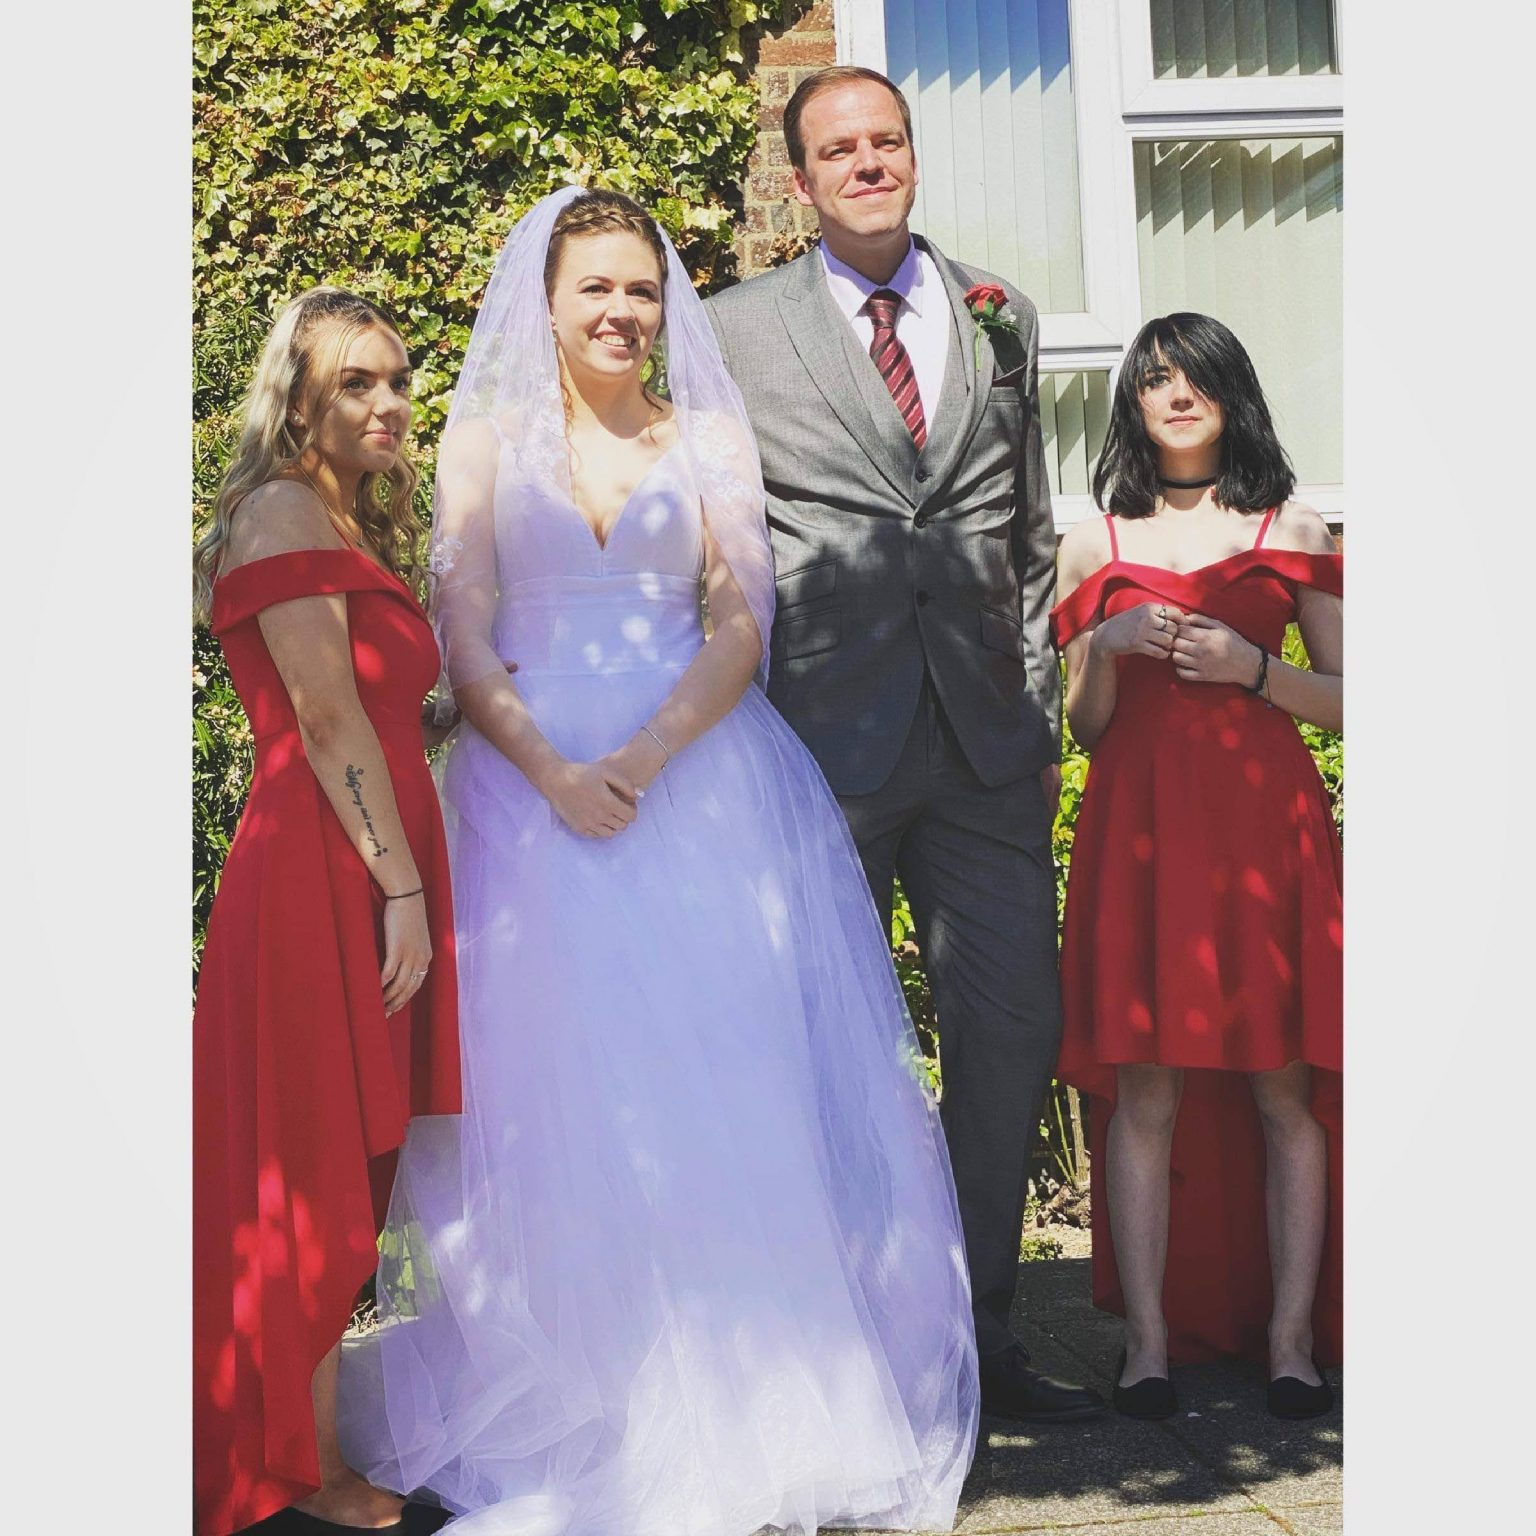 Bride and groom with a bridesmaid each side in red dresses at a COVID wedding